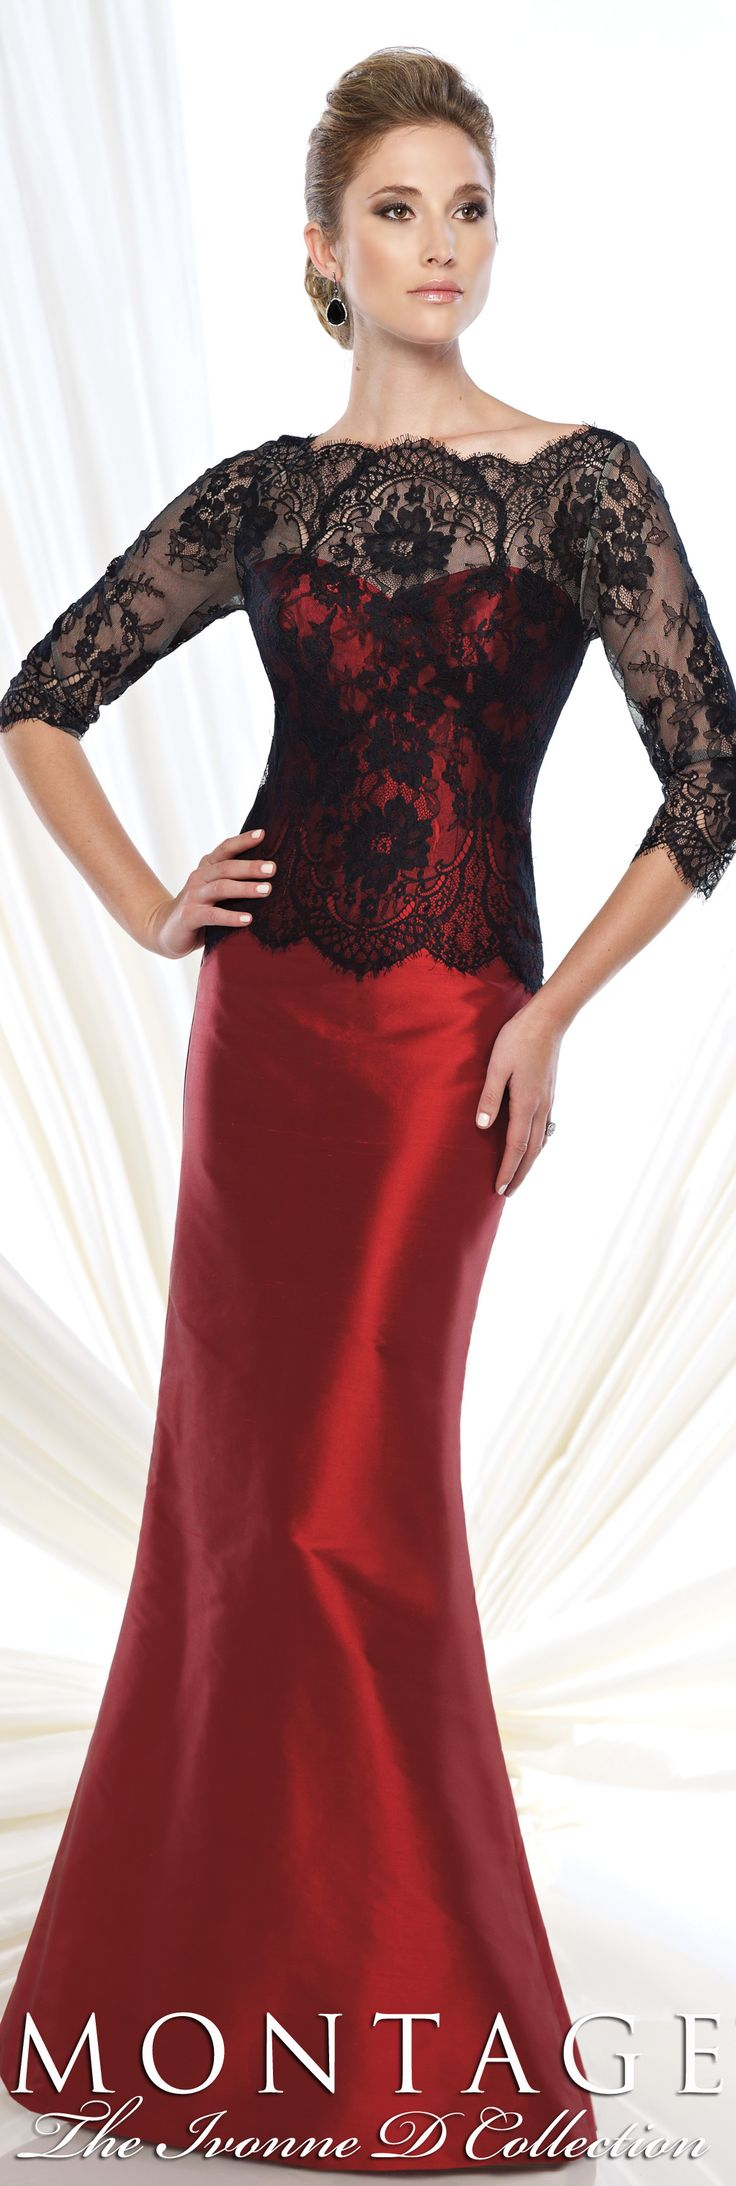 Montage The Ivonne D Collection Fall 2015 - Style No. 215D07 #redeveninggowns